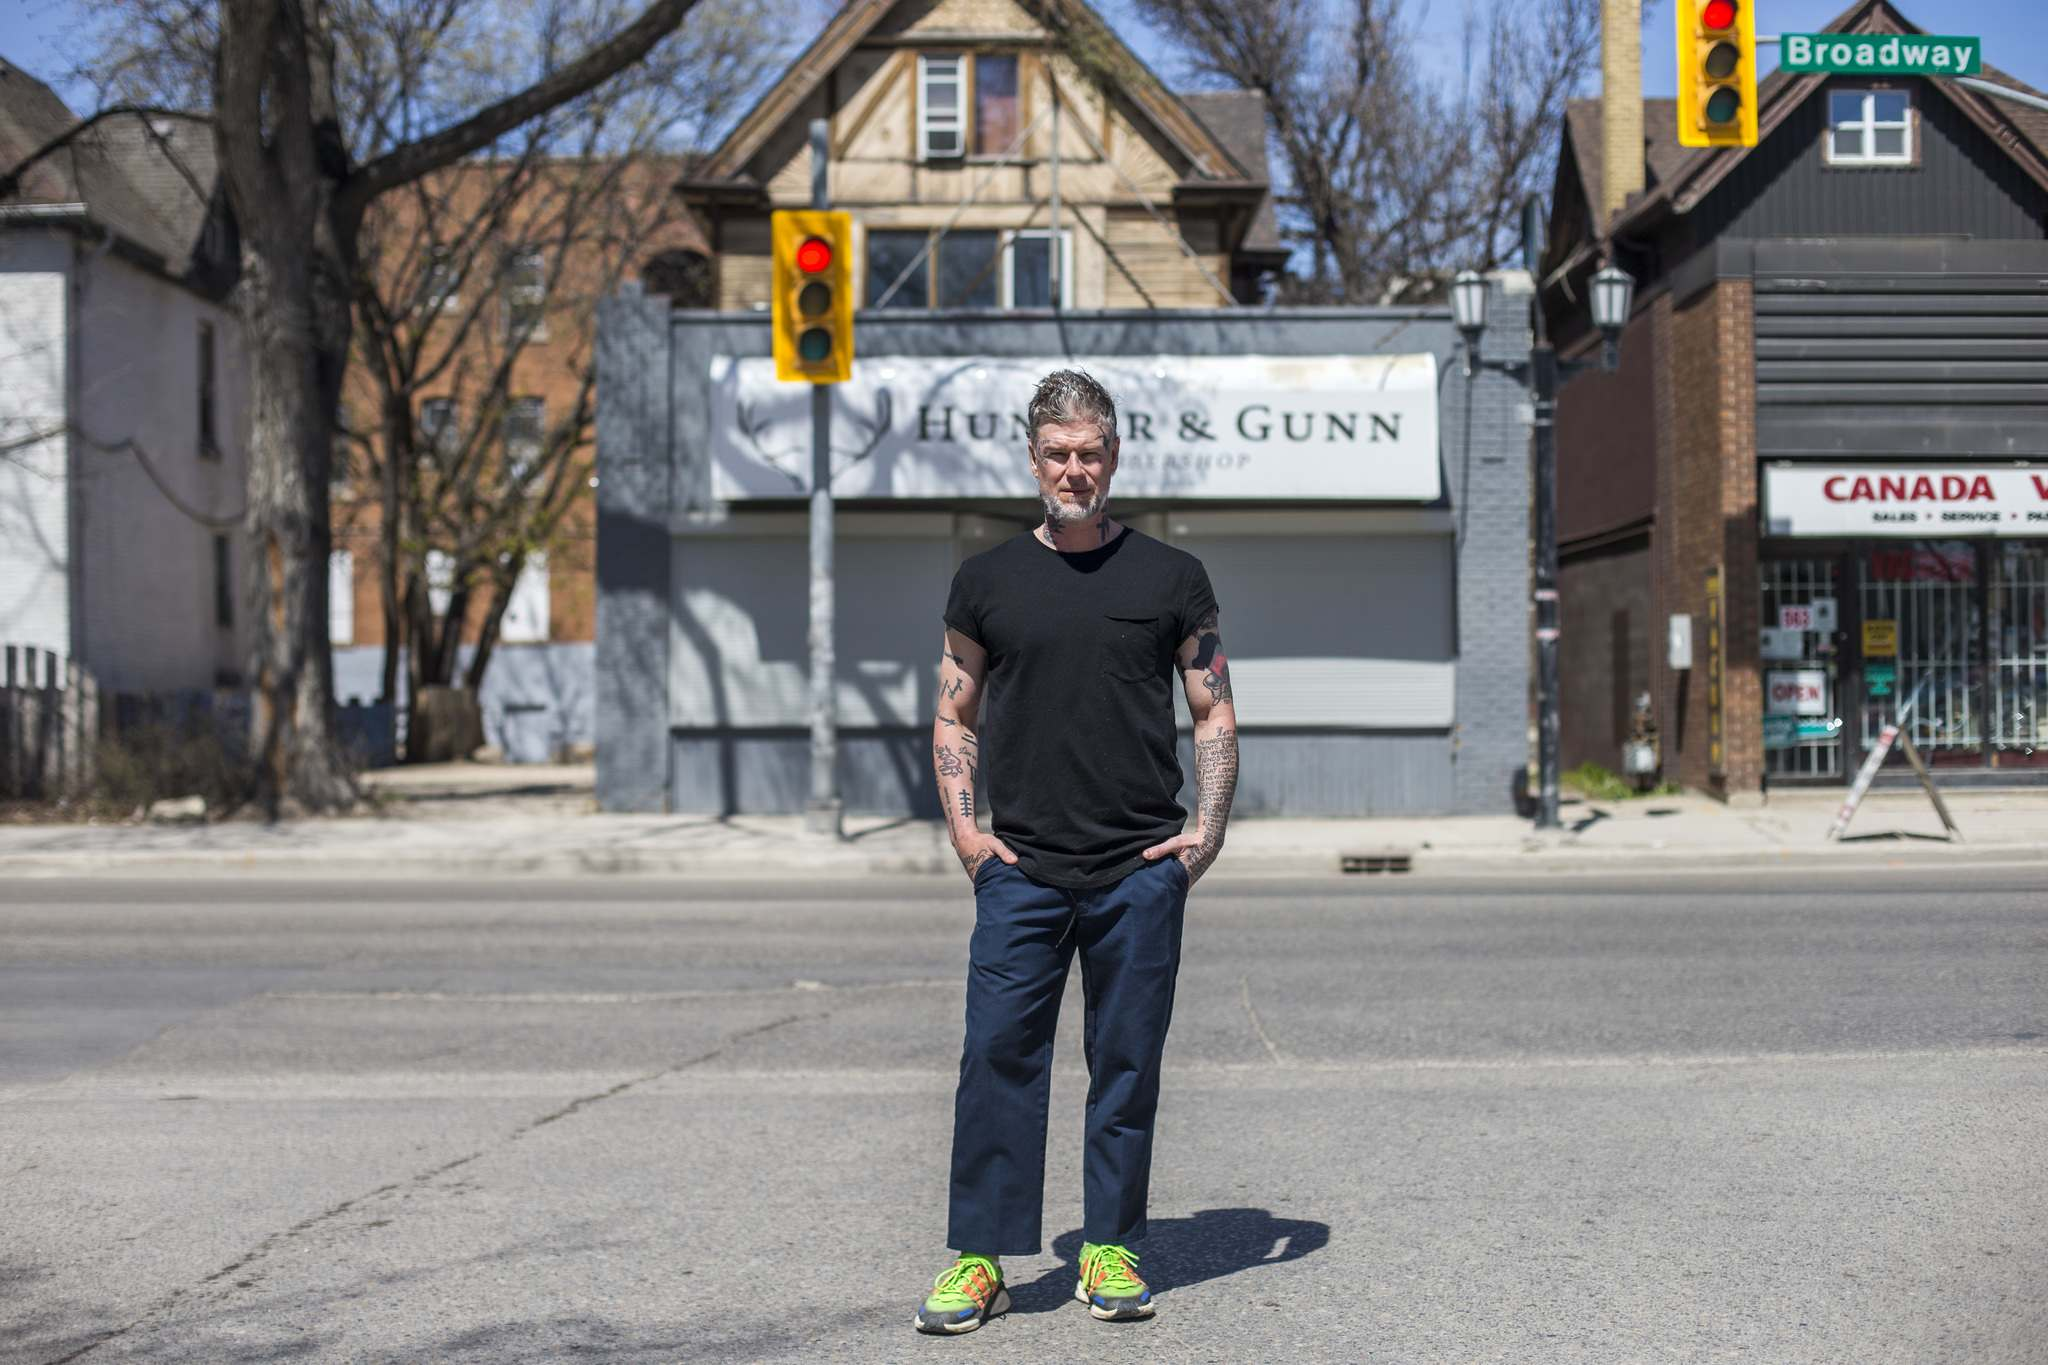 Jeremy Regan, owner of Hunter & Gunn barbershop, is taking his craft to clients' yards and offering much-needed hair cuts. (Mikaela MacKenzie / Winnipeg Free Press files)